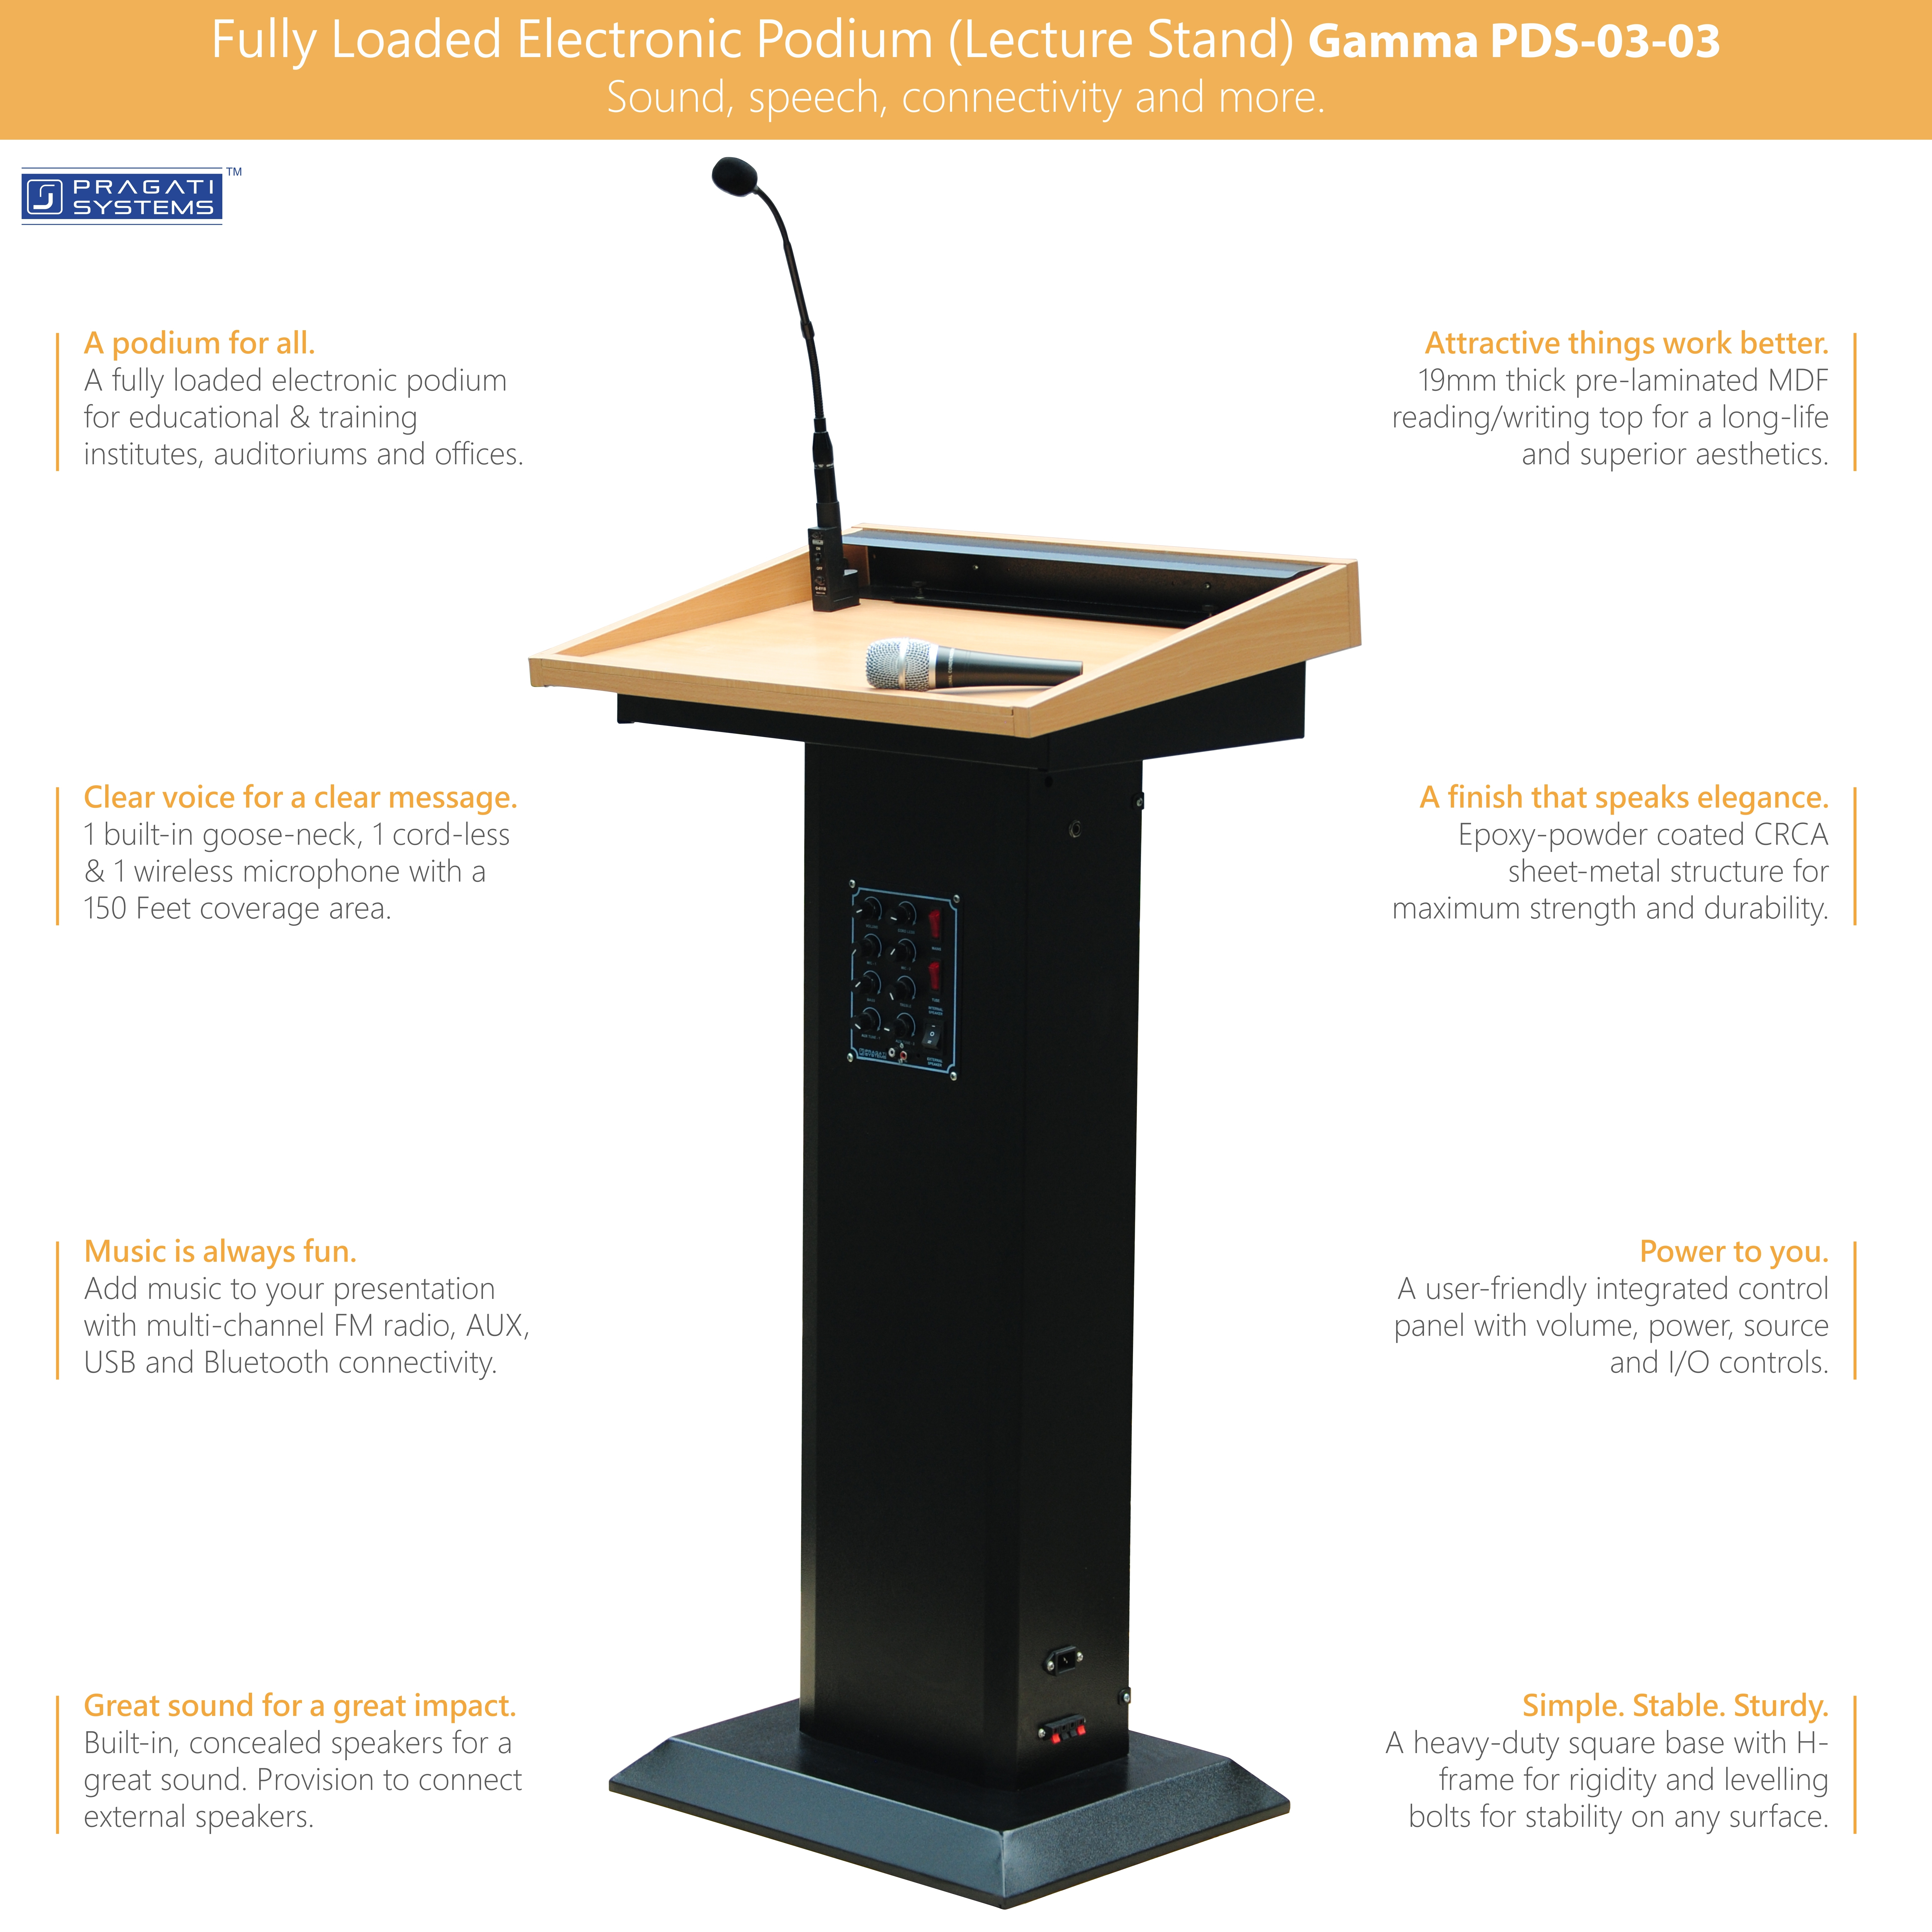 Fully Loaded Digital Podium (Lecture Stand)